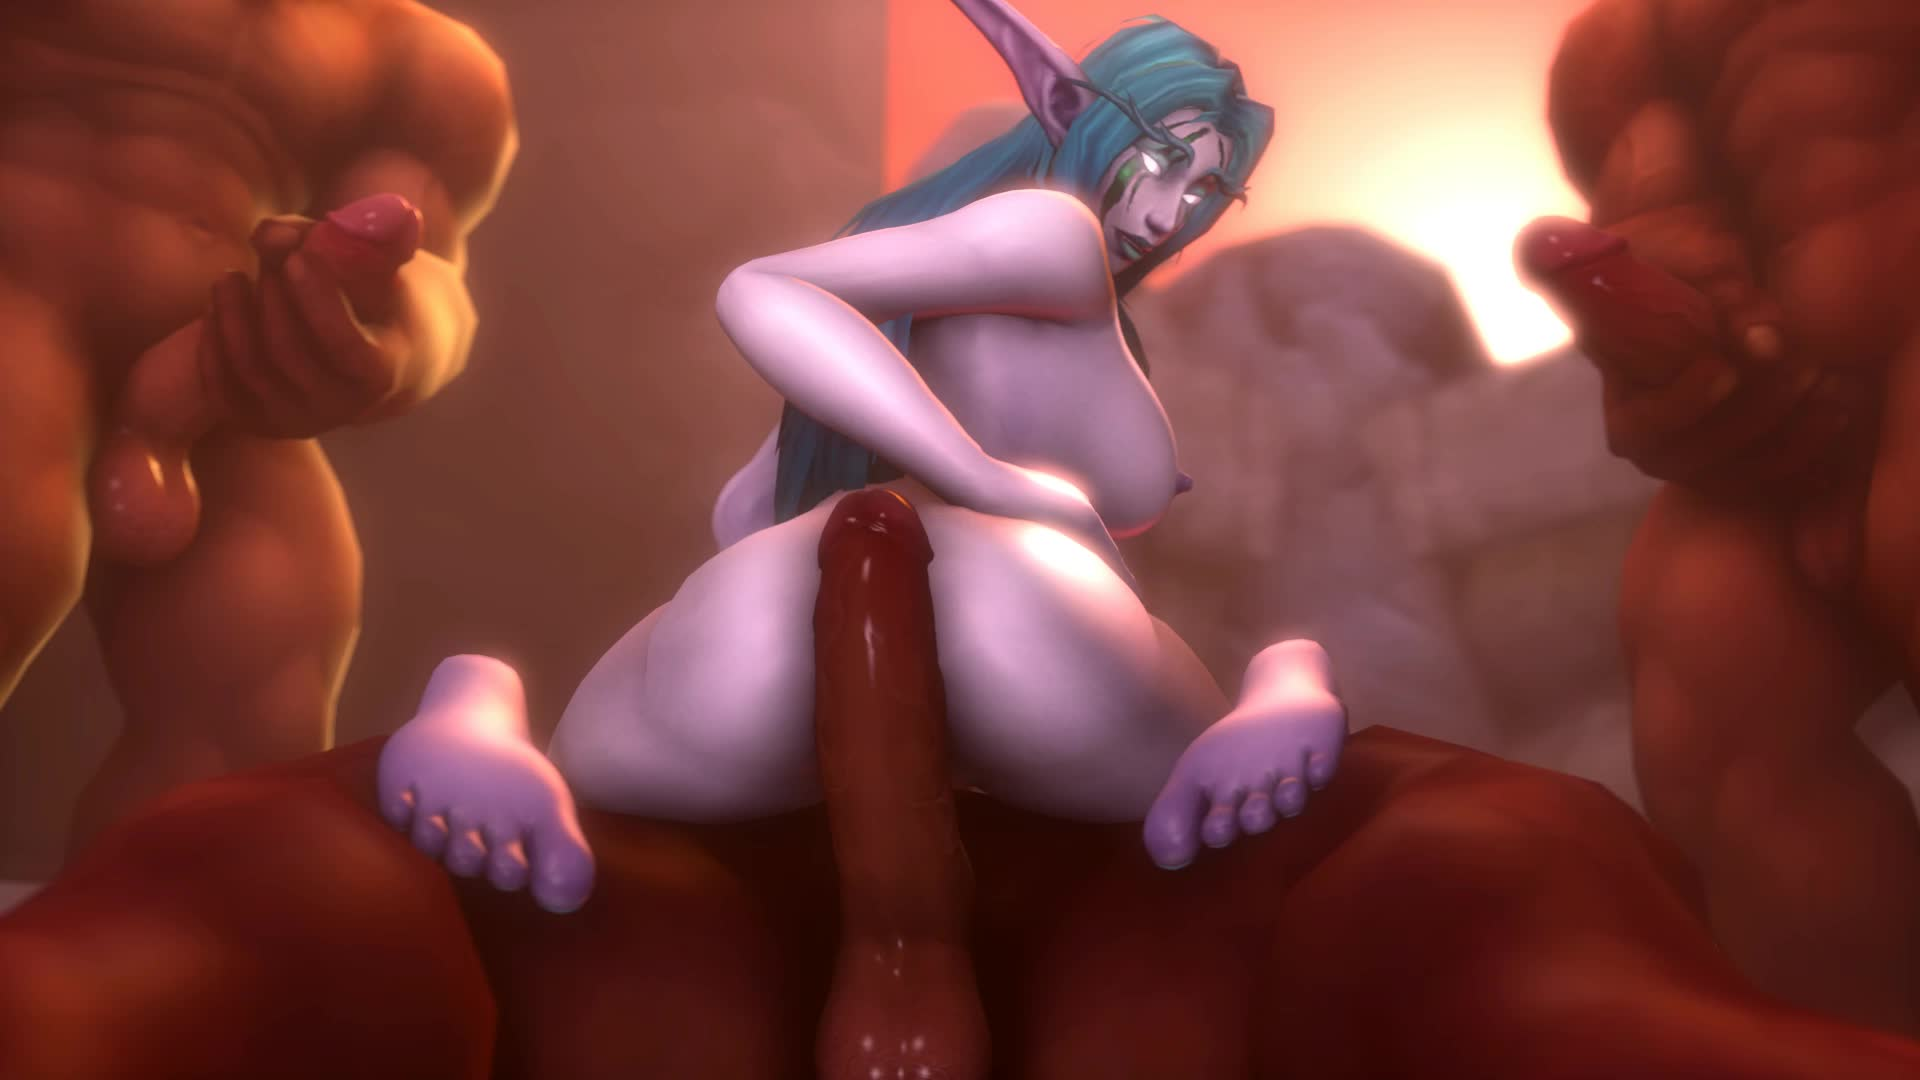 Orc and night elf porn hardcore galleries